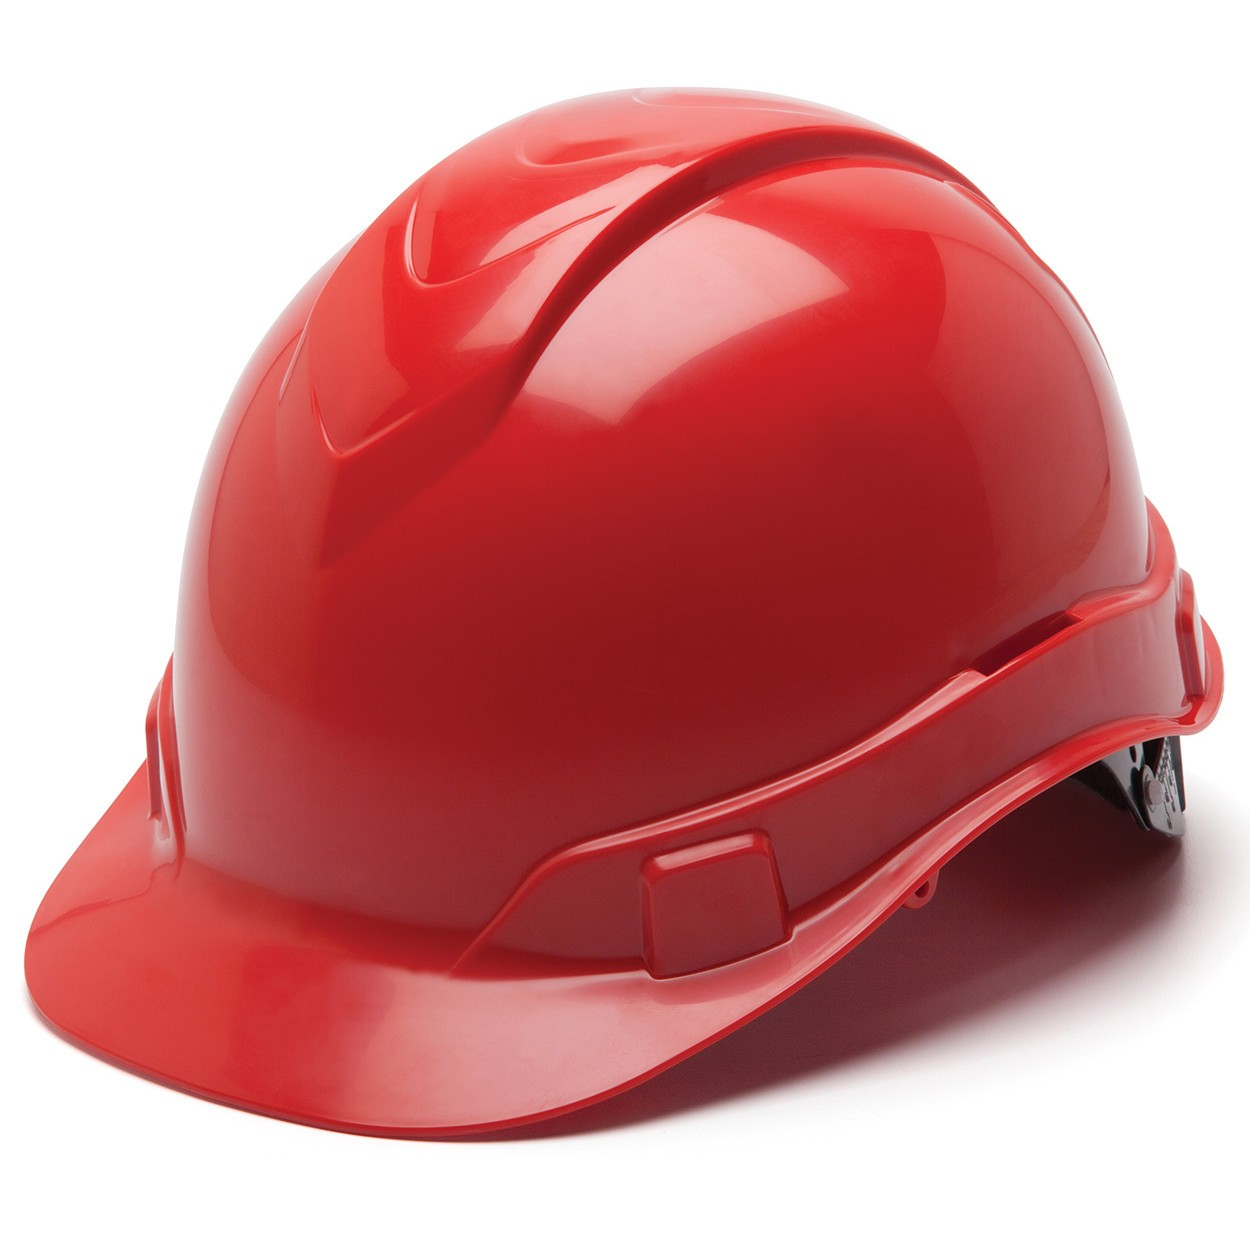 Pyramex Red Ridgeline Cap Style Hard Hat, 6pt Ratchet Susp